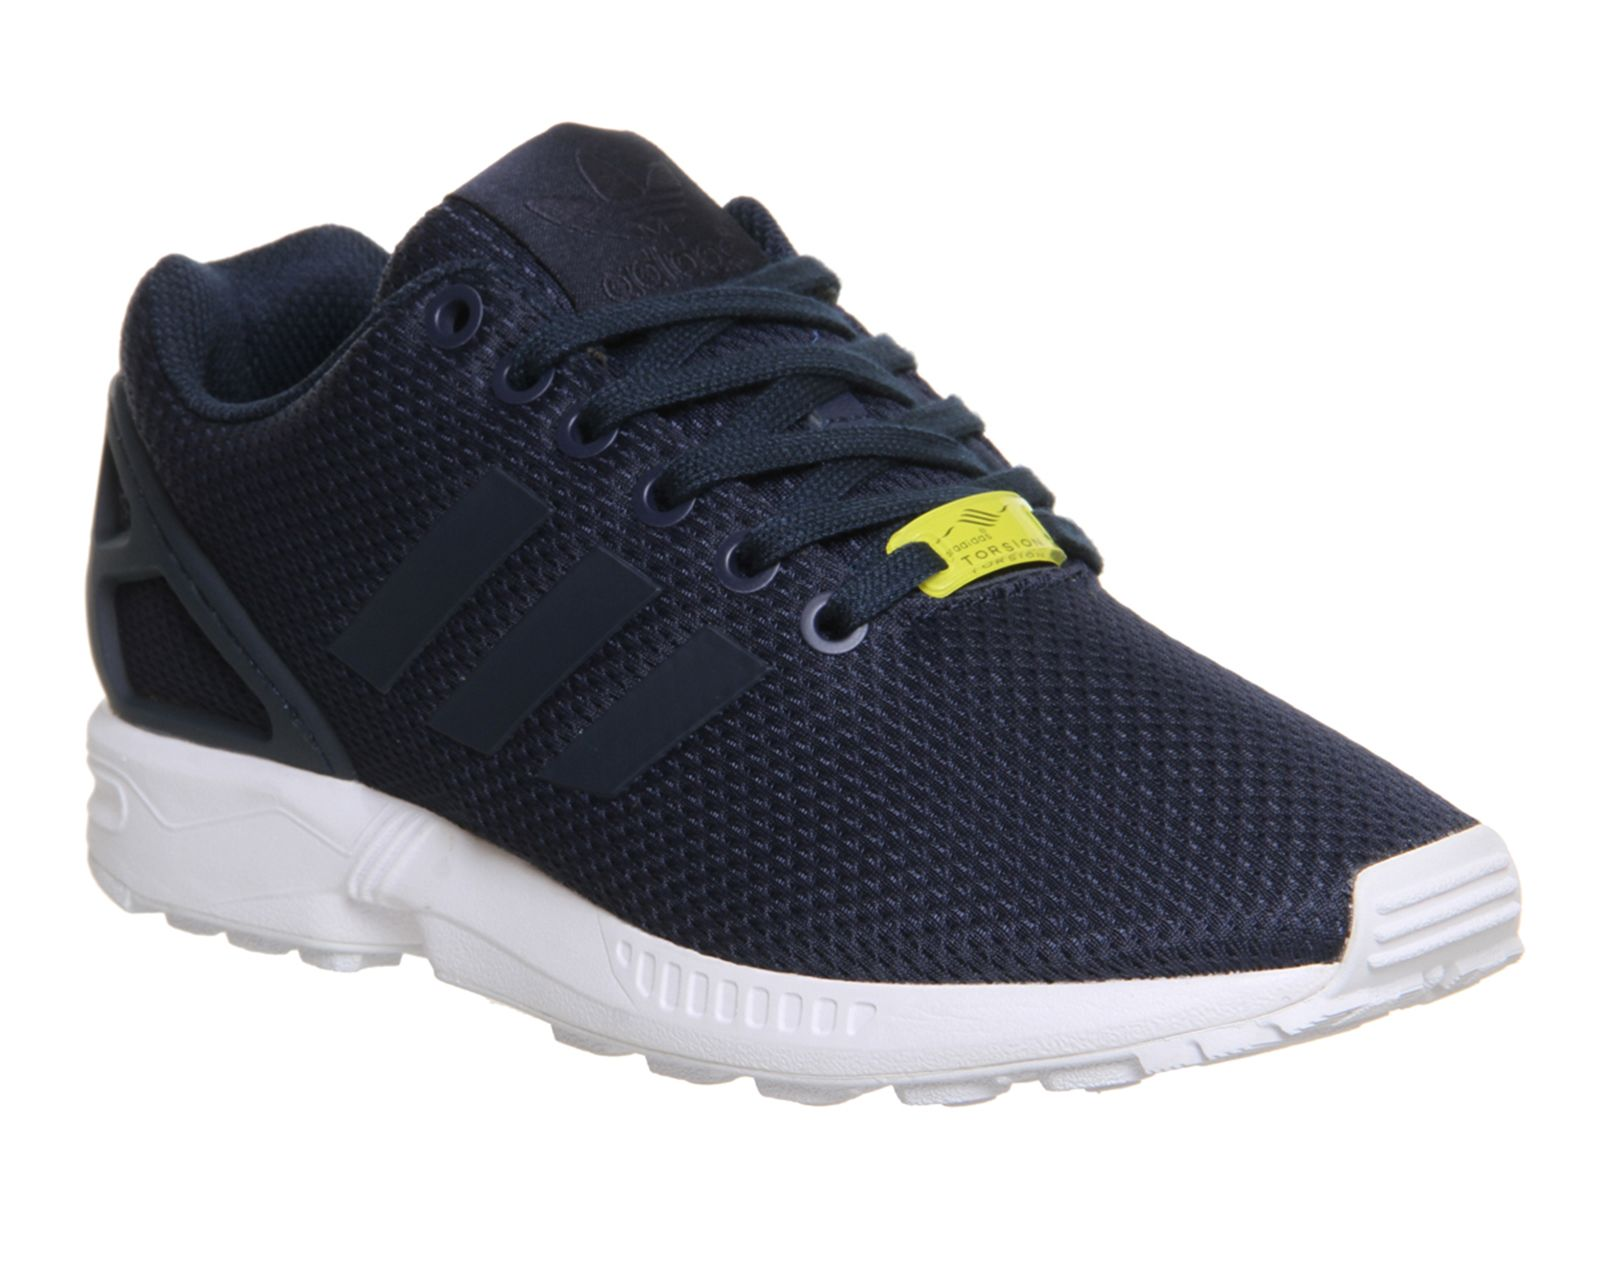 a7af9a5cac636 discount code for adidas zx flux slip on ebay 18387 0564c